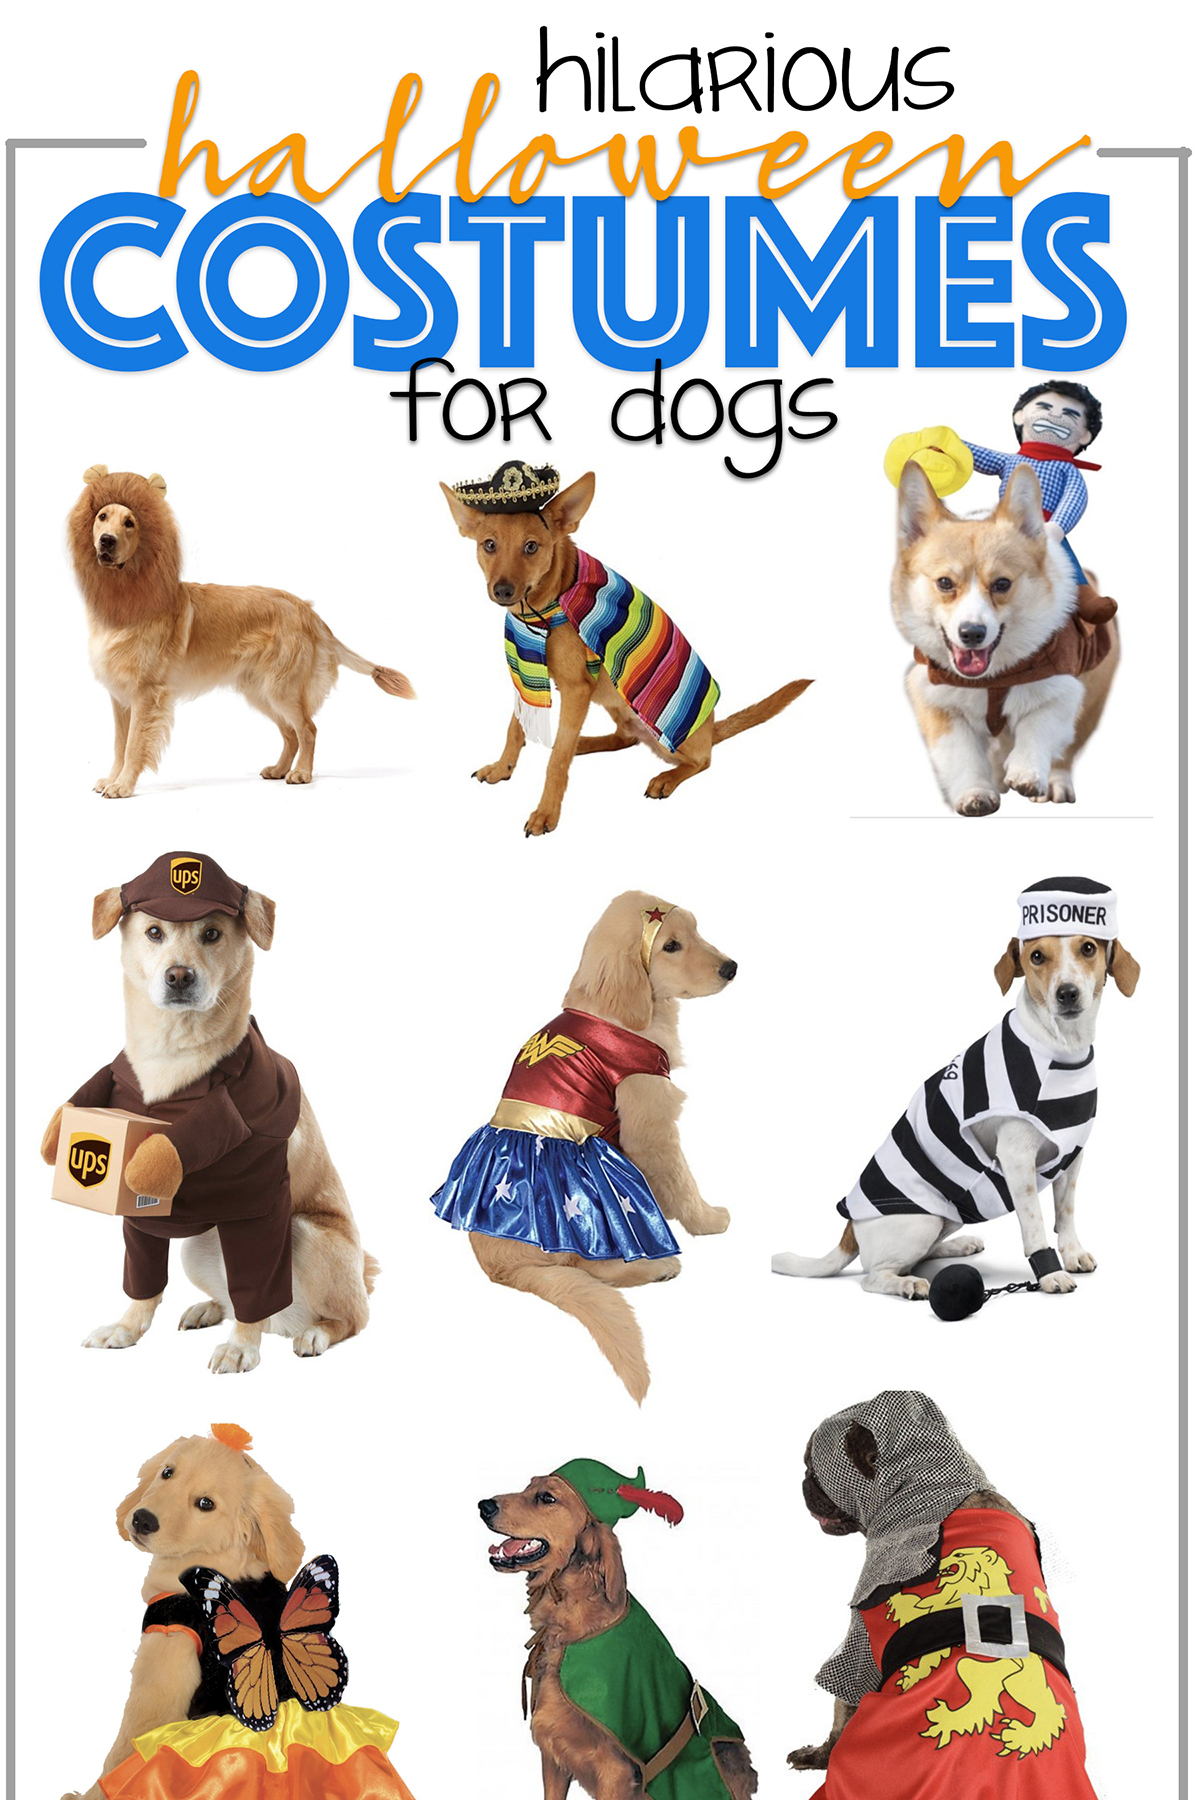 Featured hilarious halloween costumes for dogs